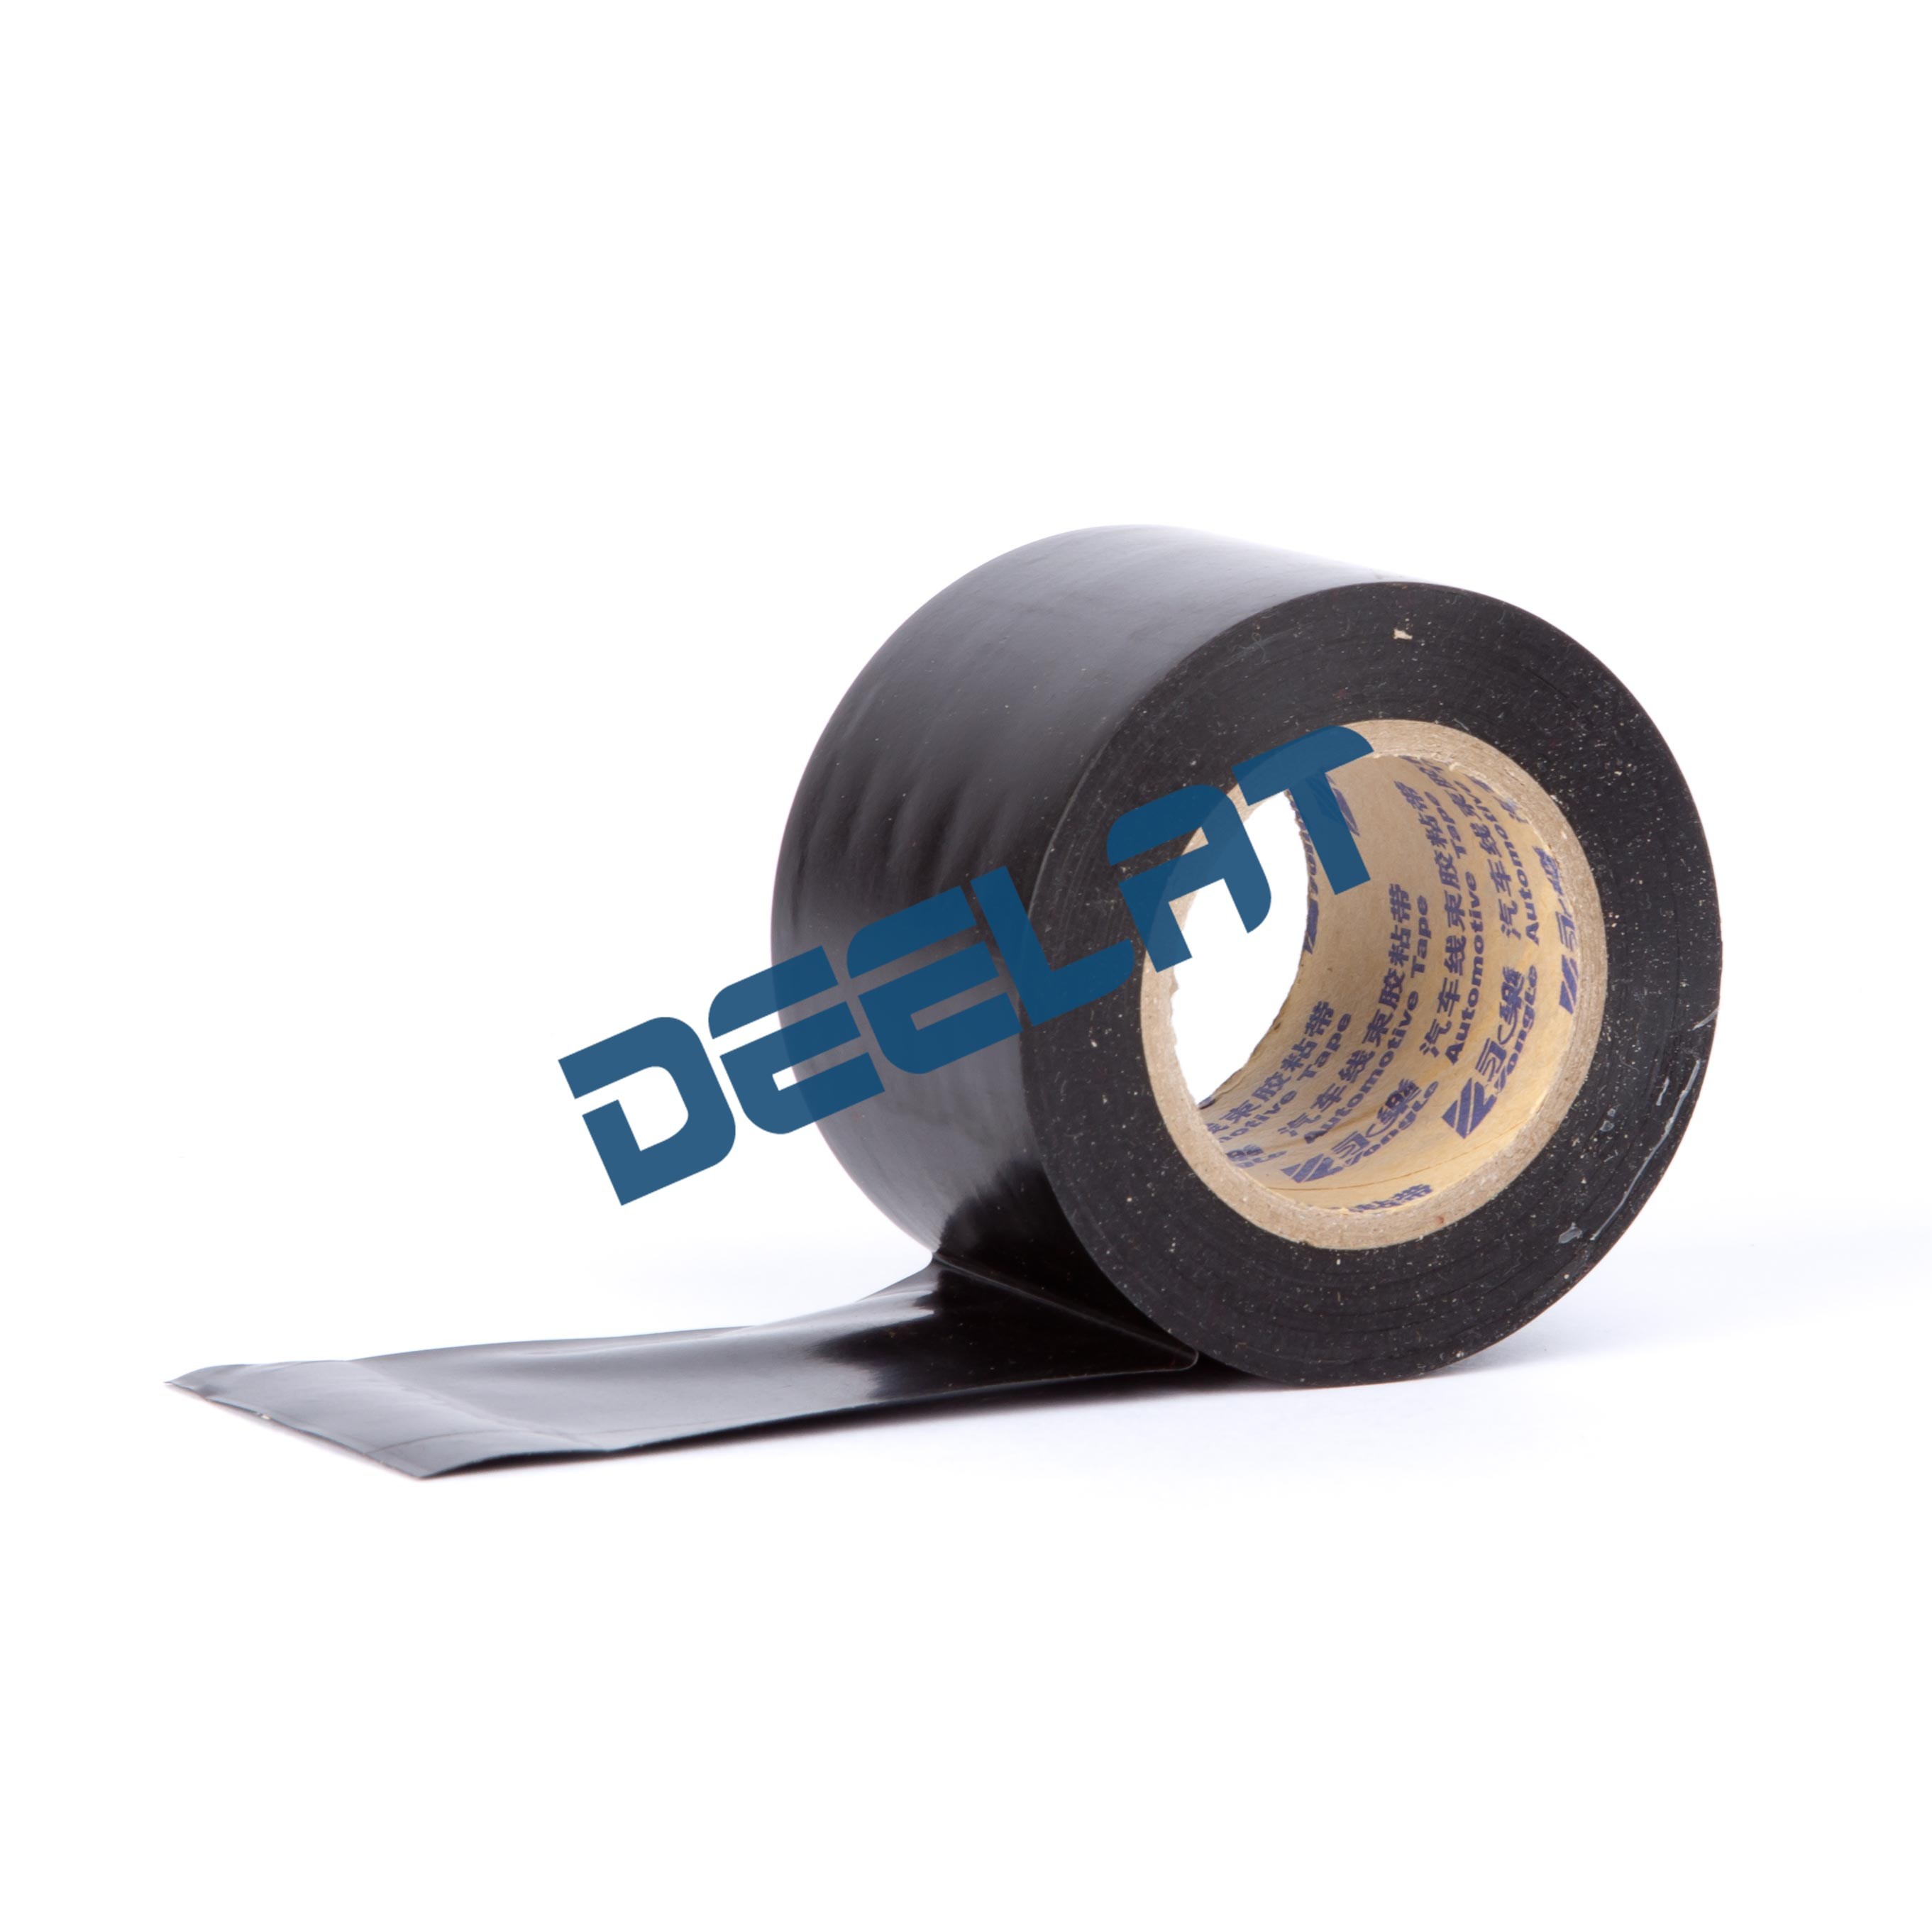 Auto IWre Harness Tape deelat blog automotive wire harness tape uses, types and automotive wiring harness supplies at aneh.co